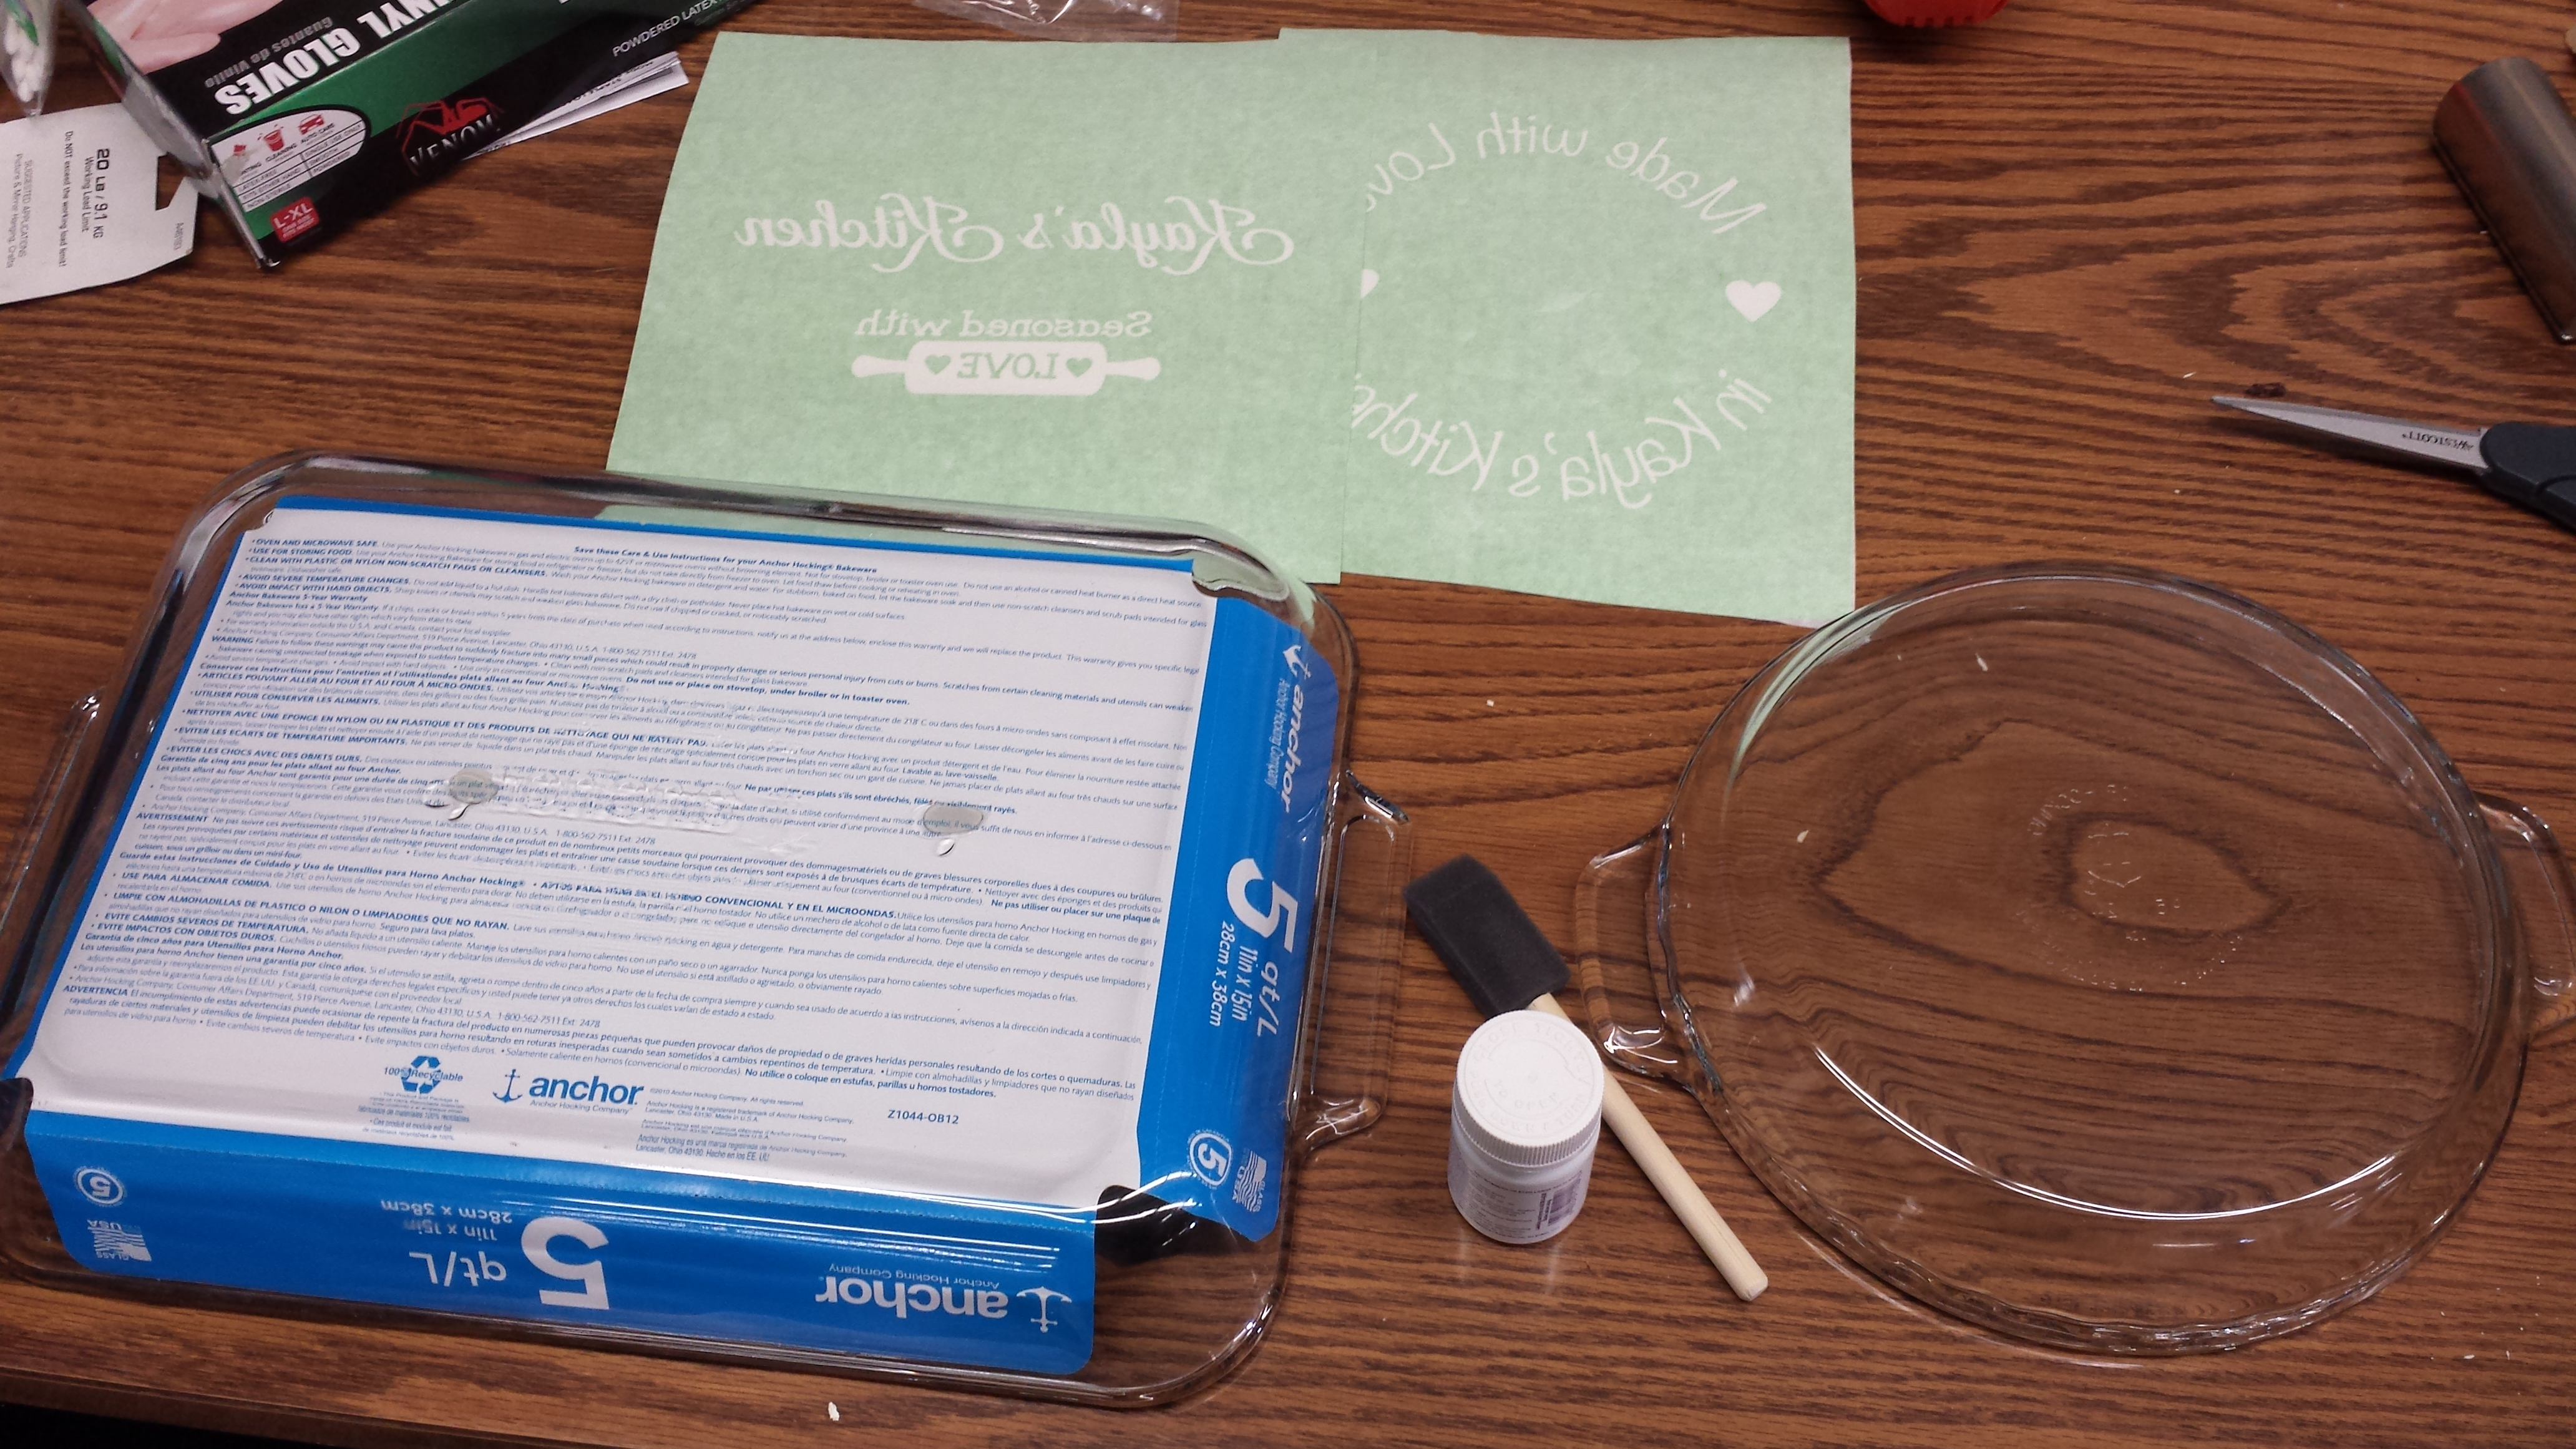 Supplies need to etch a personalized design on glass dish using vinyl decal stickers